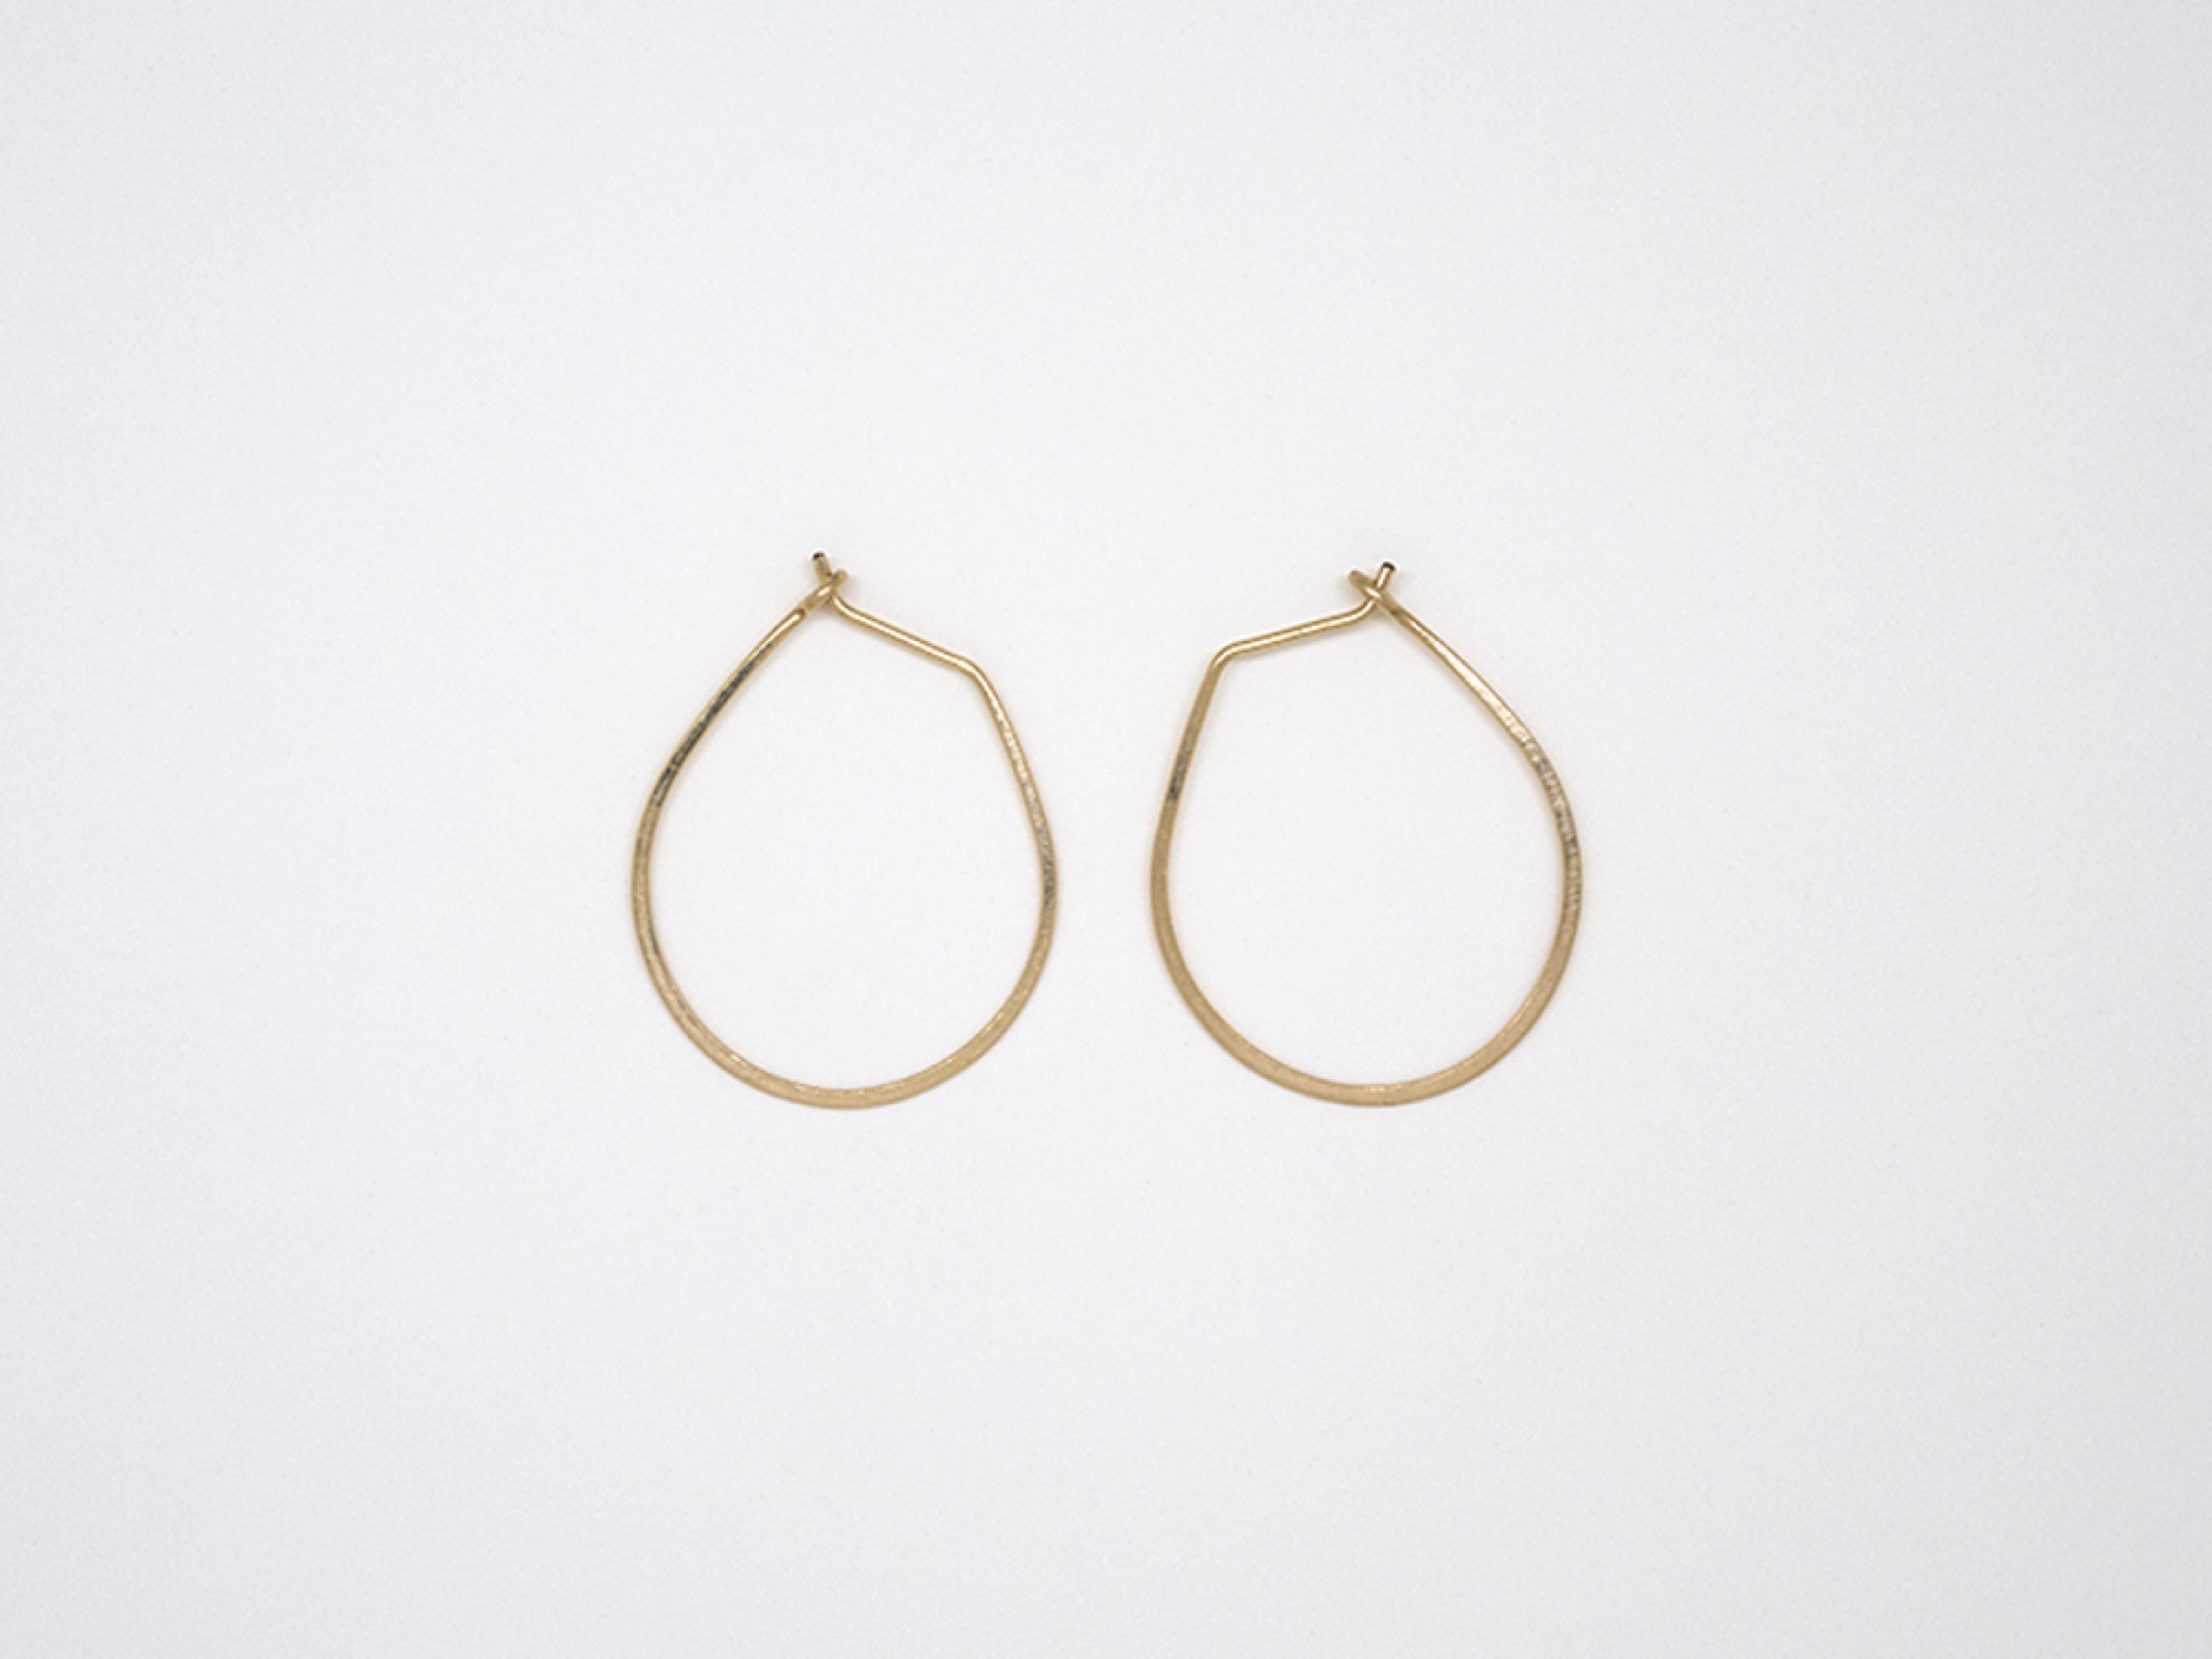 Small Gold Filled Teardrop Earrings - E1687